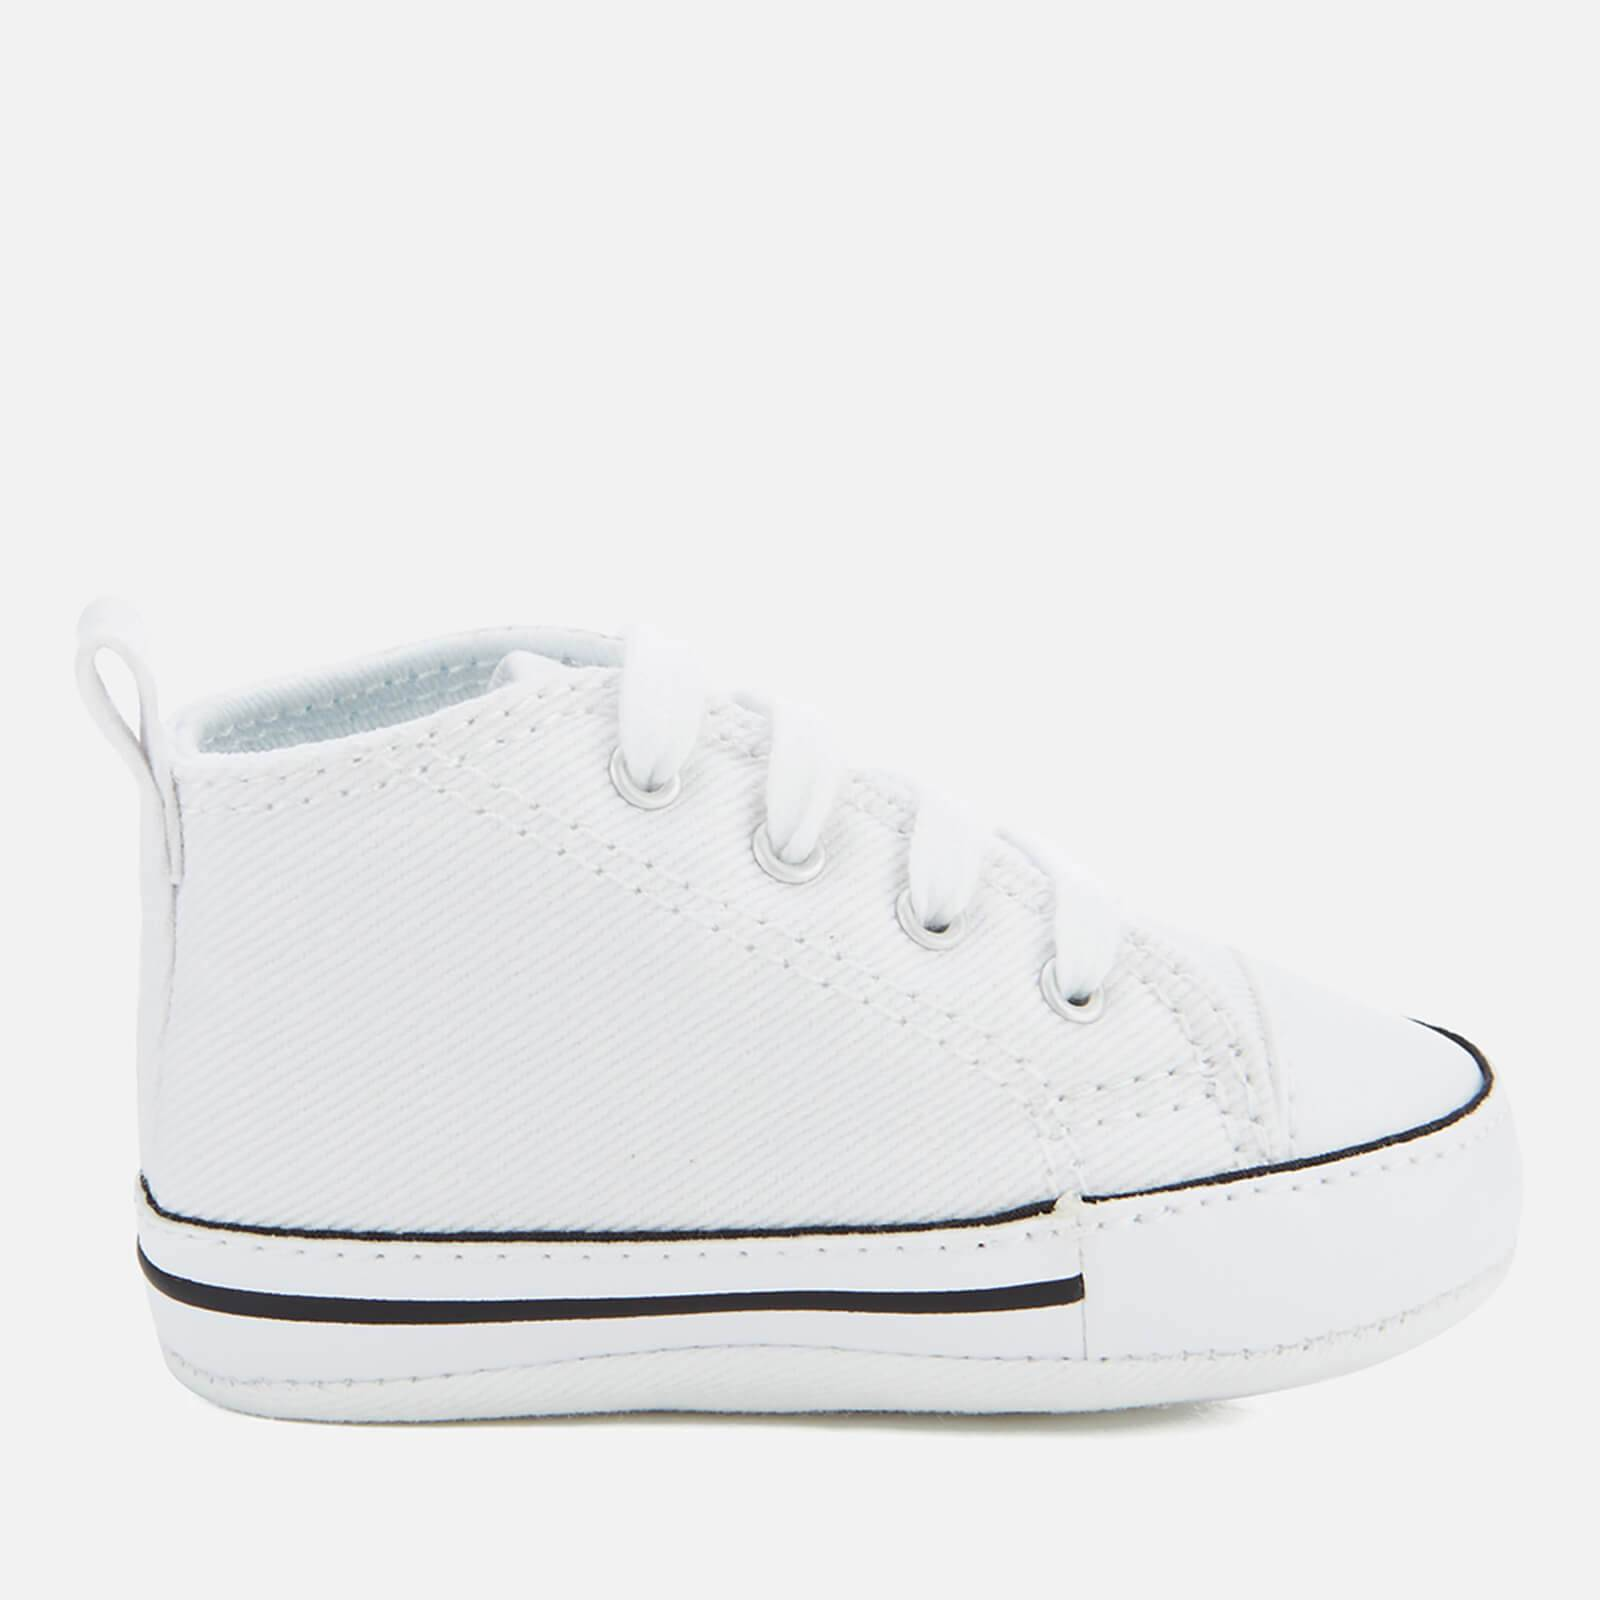 Converse Babies Chuck Taylor First Star Hi-Top Trainers - White - UK 3 Baby